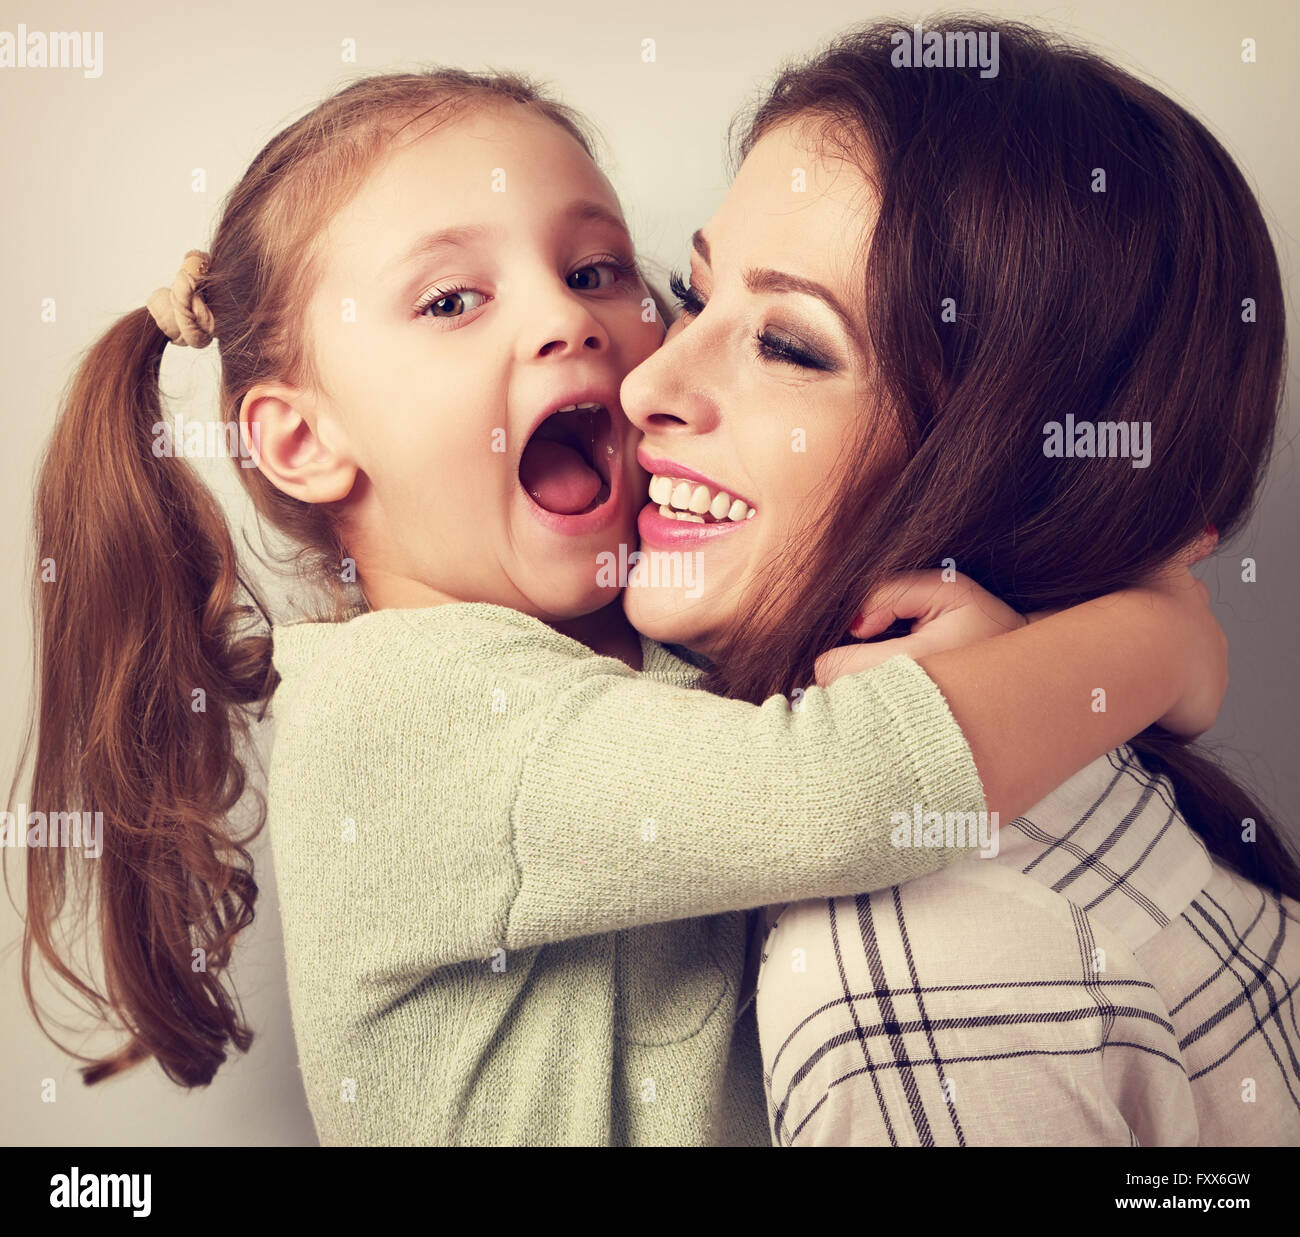 Happy grimacing kid wanting to biting her laughing mother in nose with fun face. Vintage toned portrait - Stock Image